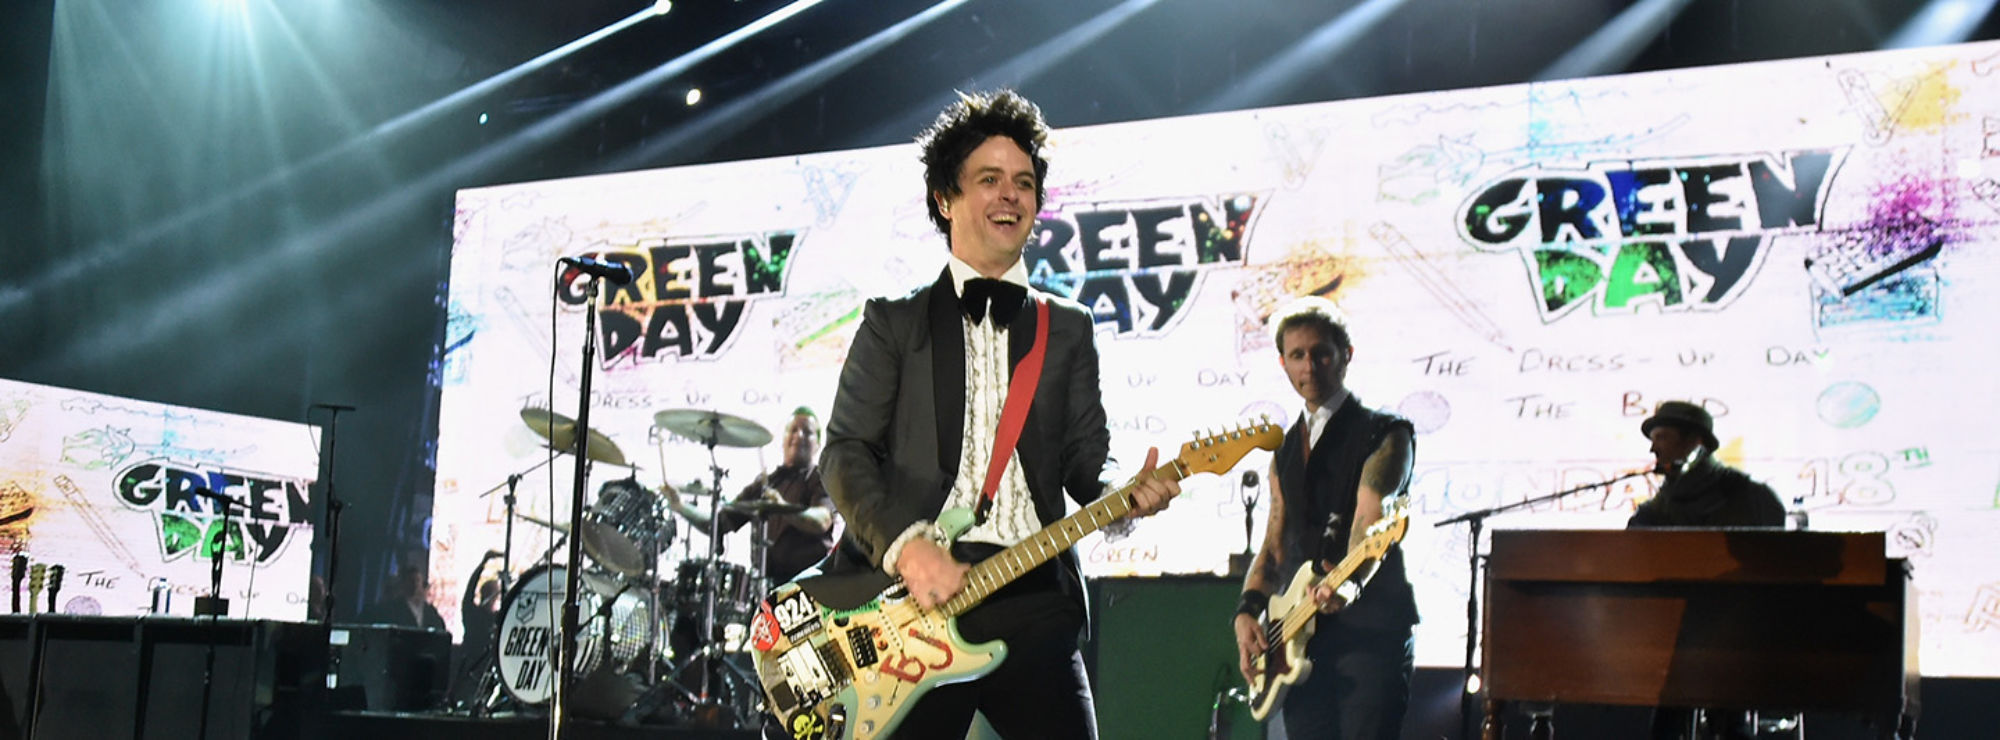 Greenday on stage